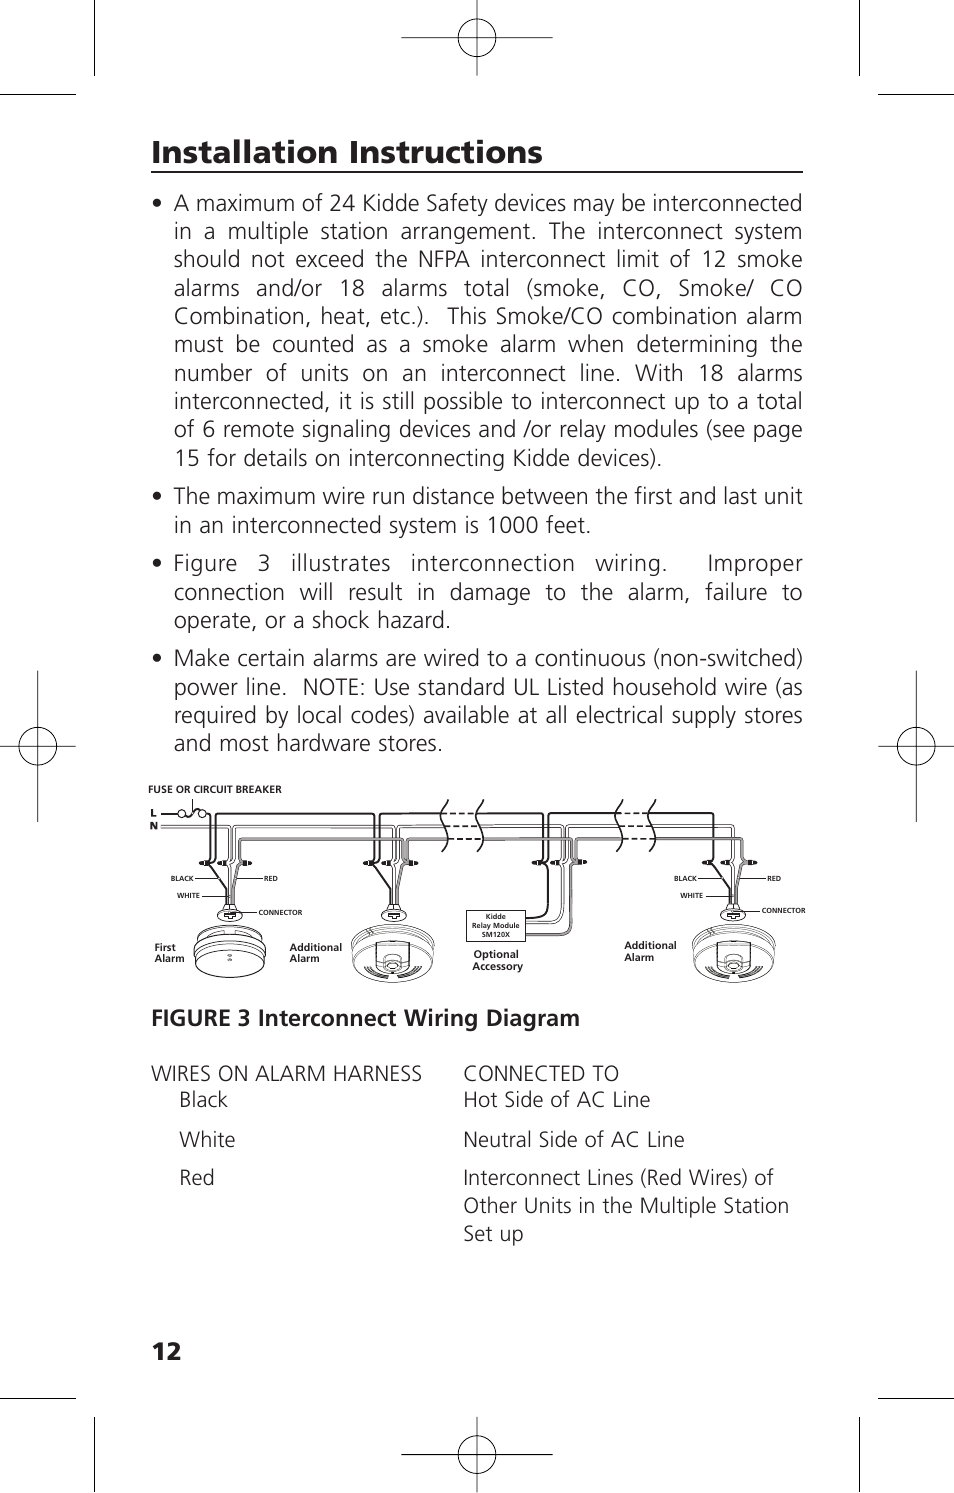 Diagram Installation Instructions Figure 3 Interconnect Wiring